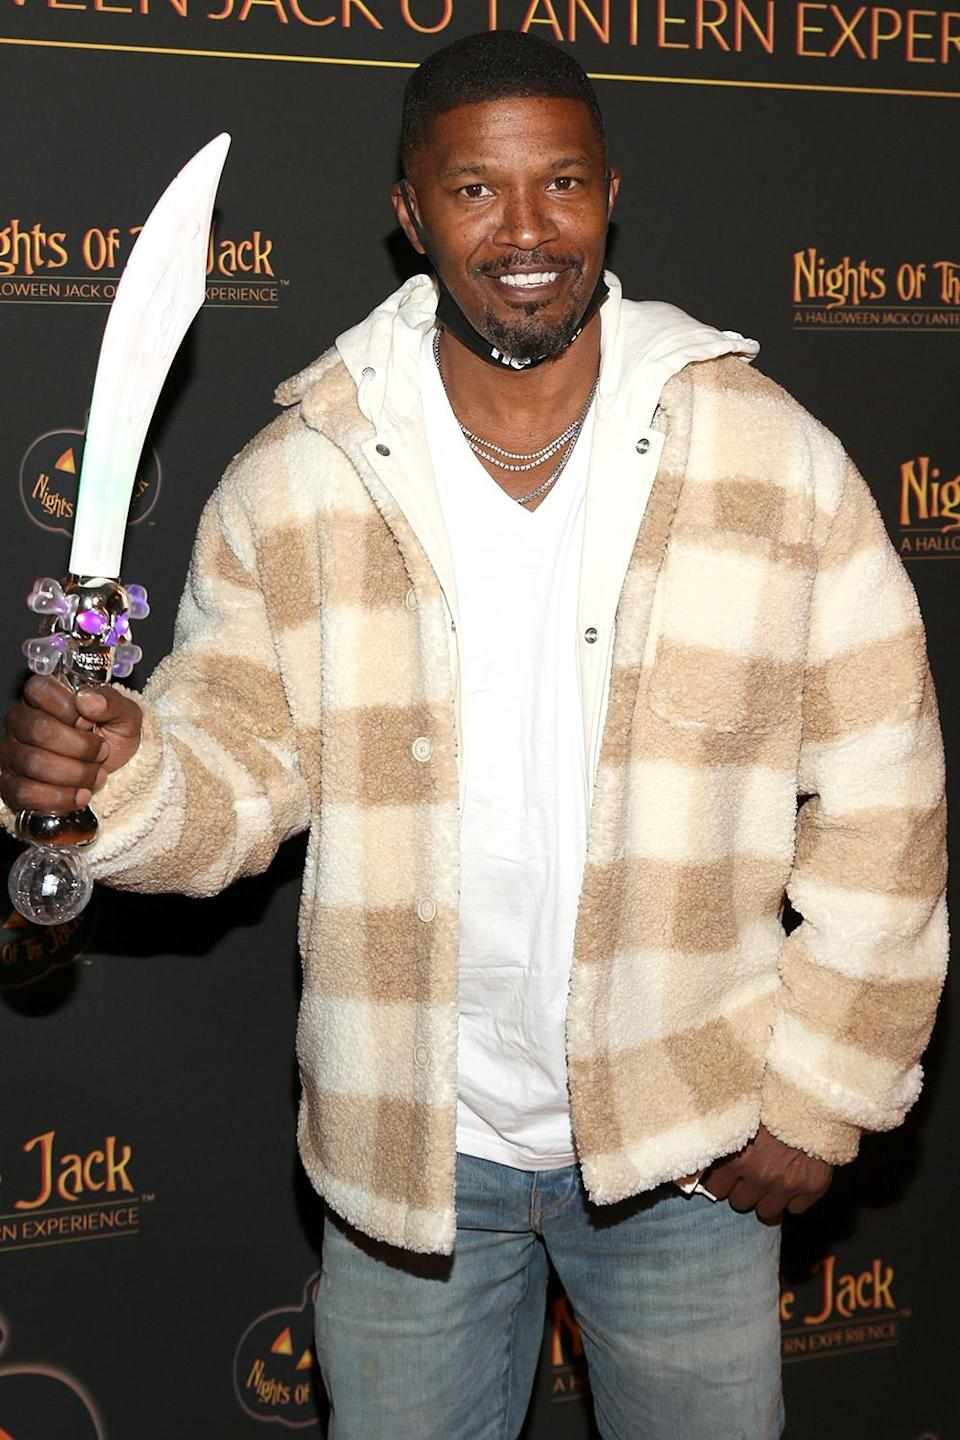 <p>arming himself at Nights of the Jack's friends and family preview night in Calabasas, California, on Oct. 1.</p>